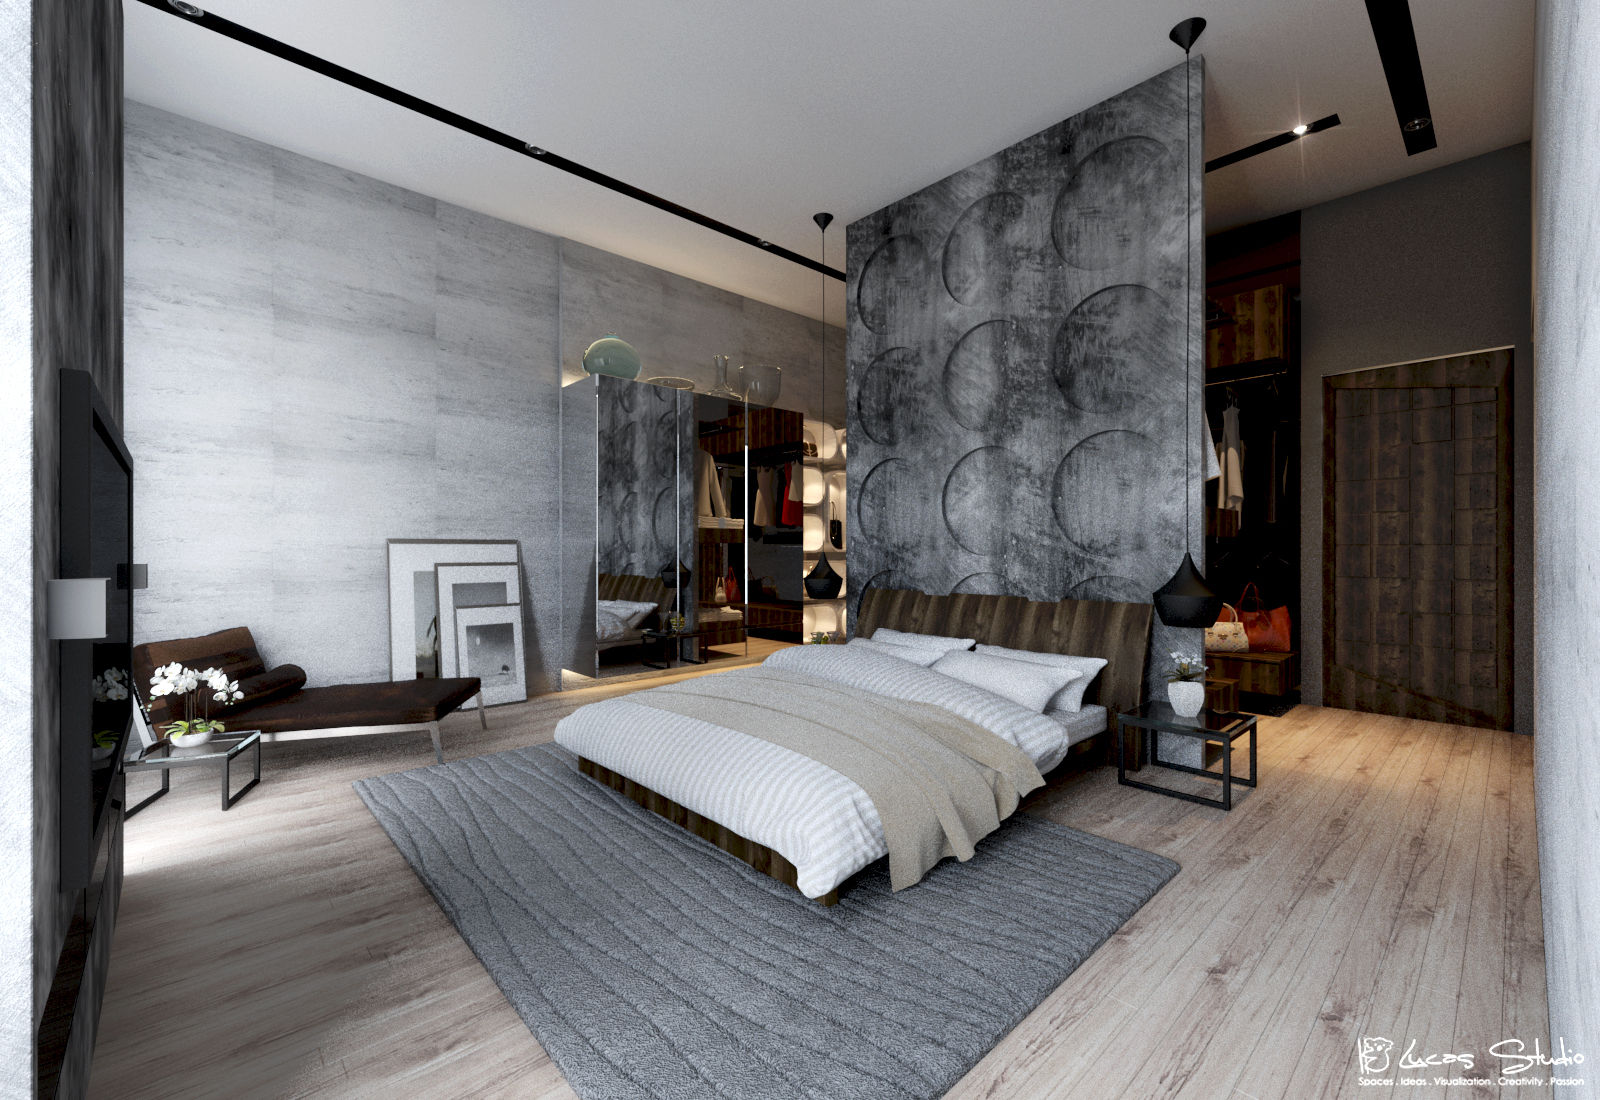 10 Beautiful Examples Of Bedroom Accent Walls - D.Signers on Minimalist:btlhhlwsf8I= Bedroom Design  id=49528